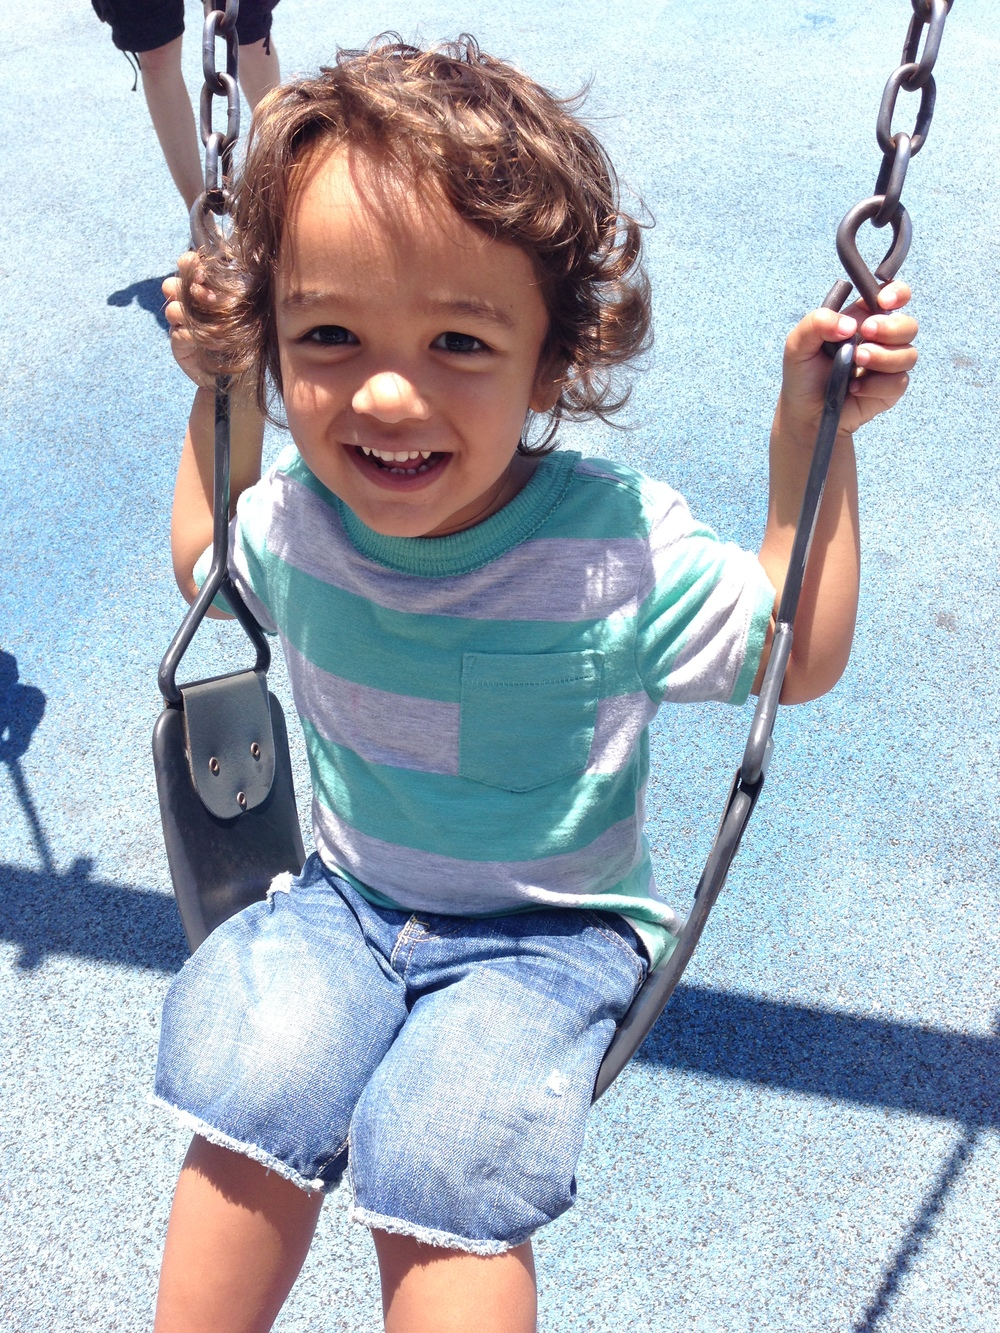 Kingston swinging